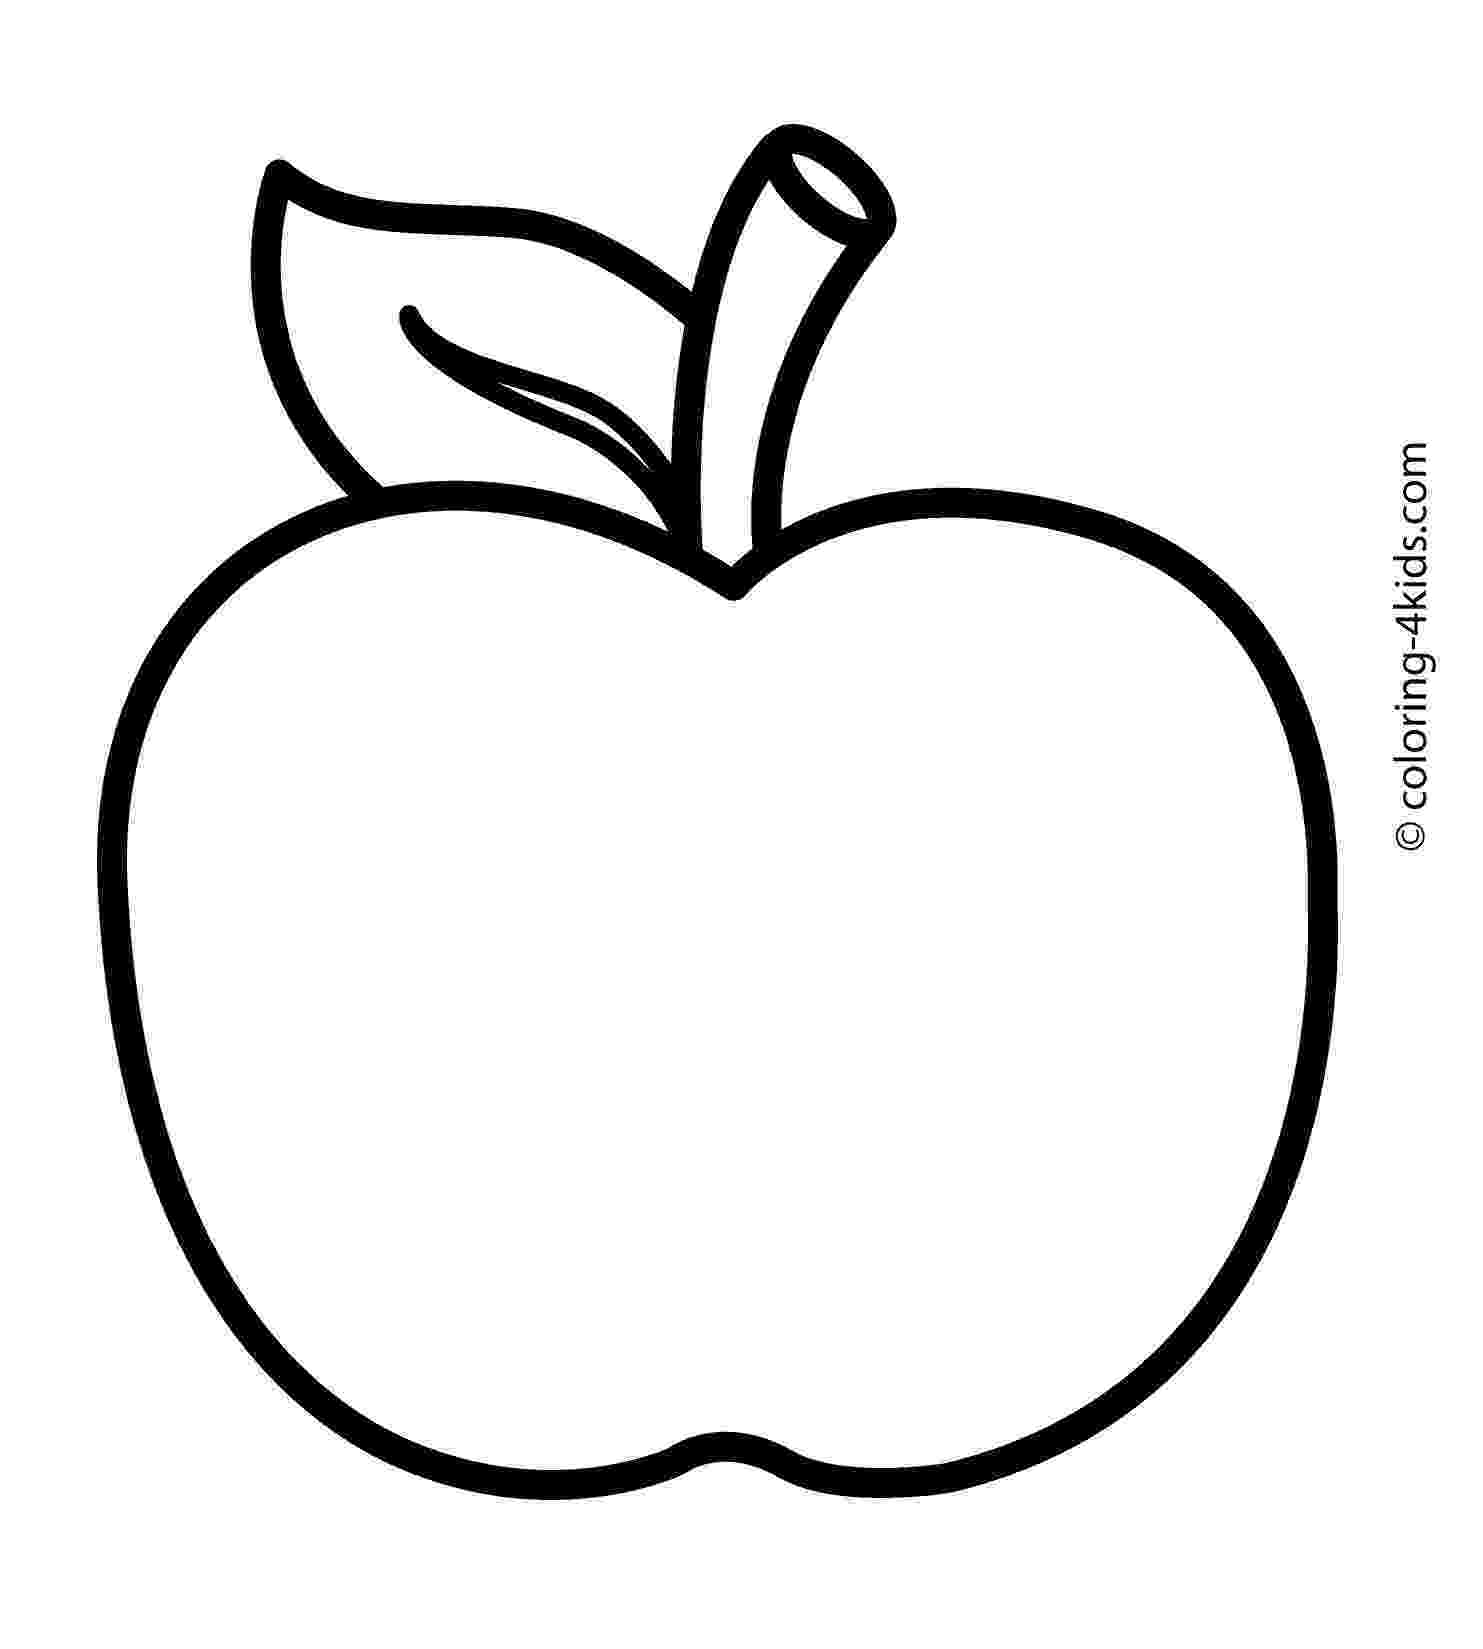 coloring page of an apple line drawing of apple at getdrawingscom free for page apple coloring of an